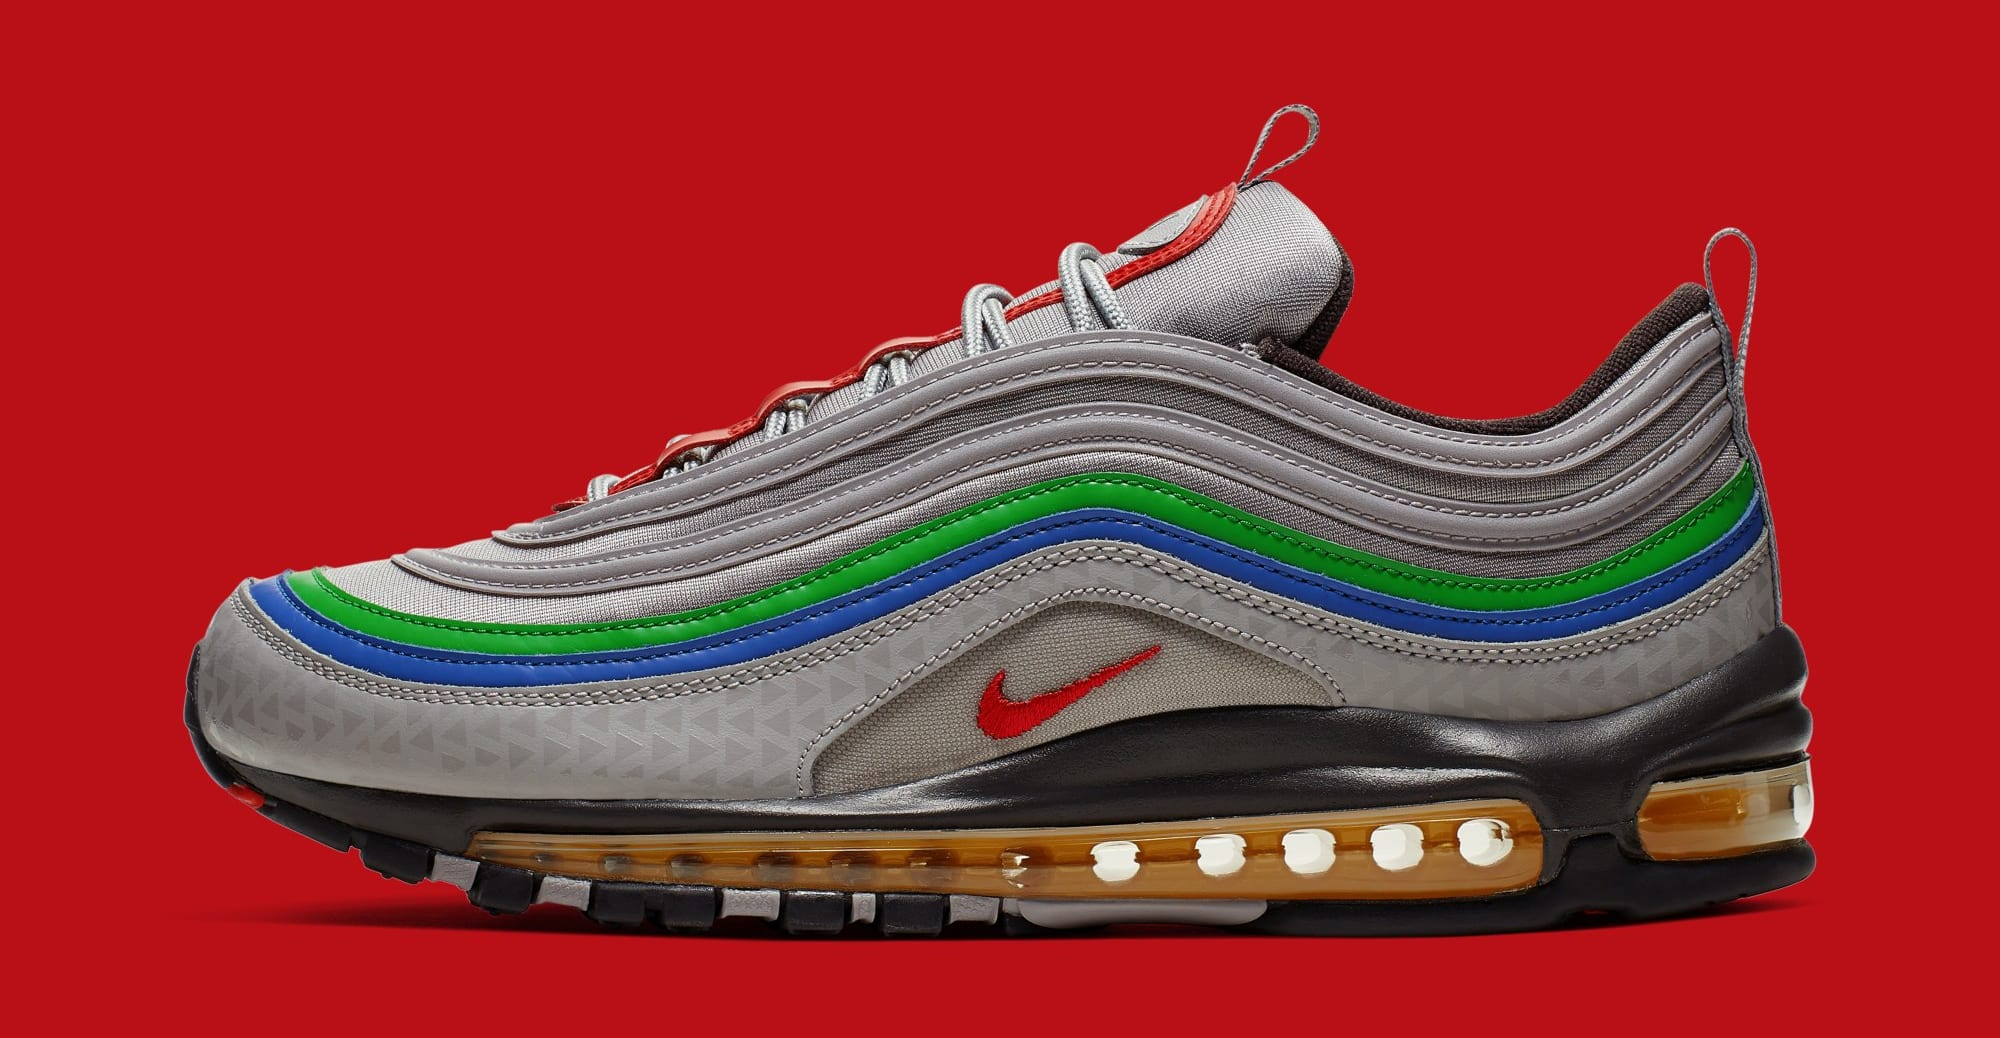 Nike Air Max 97 'Nintendo 64' CI5012-001 (Lateral)